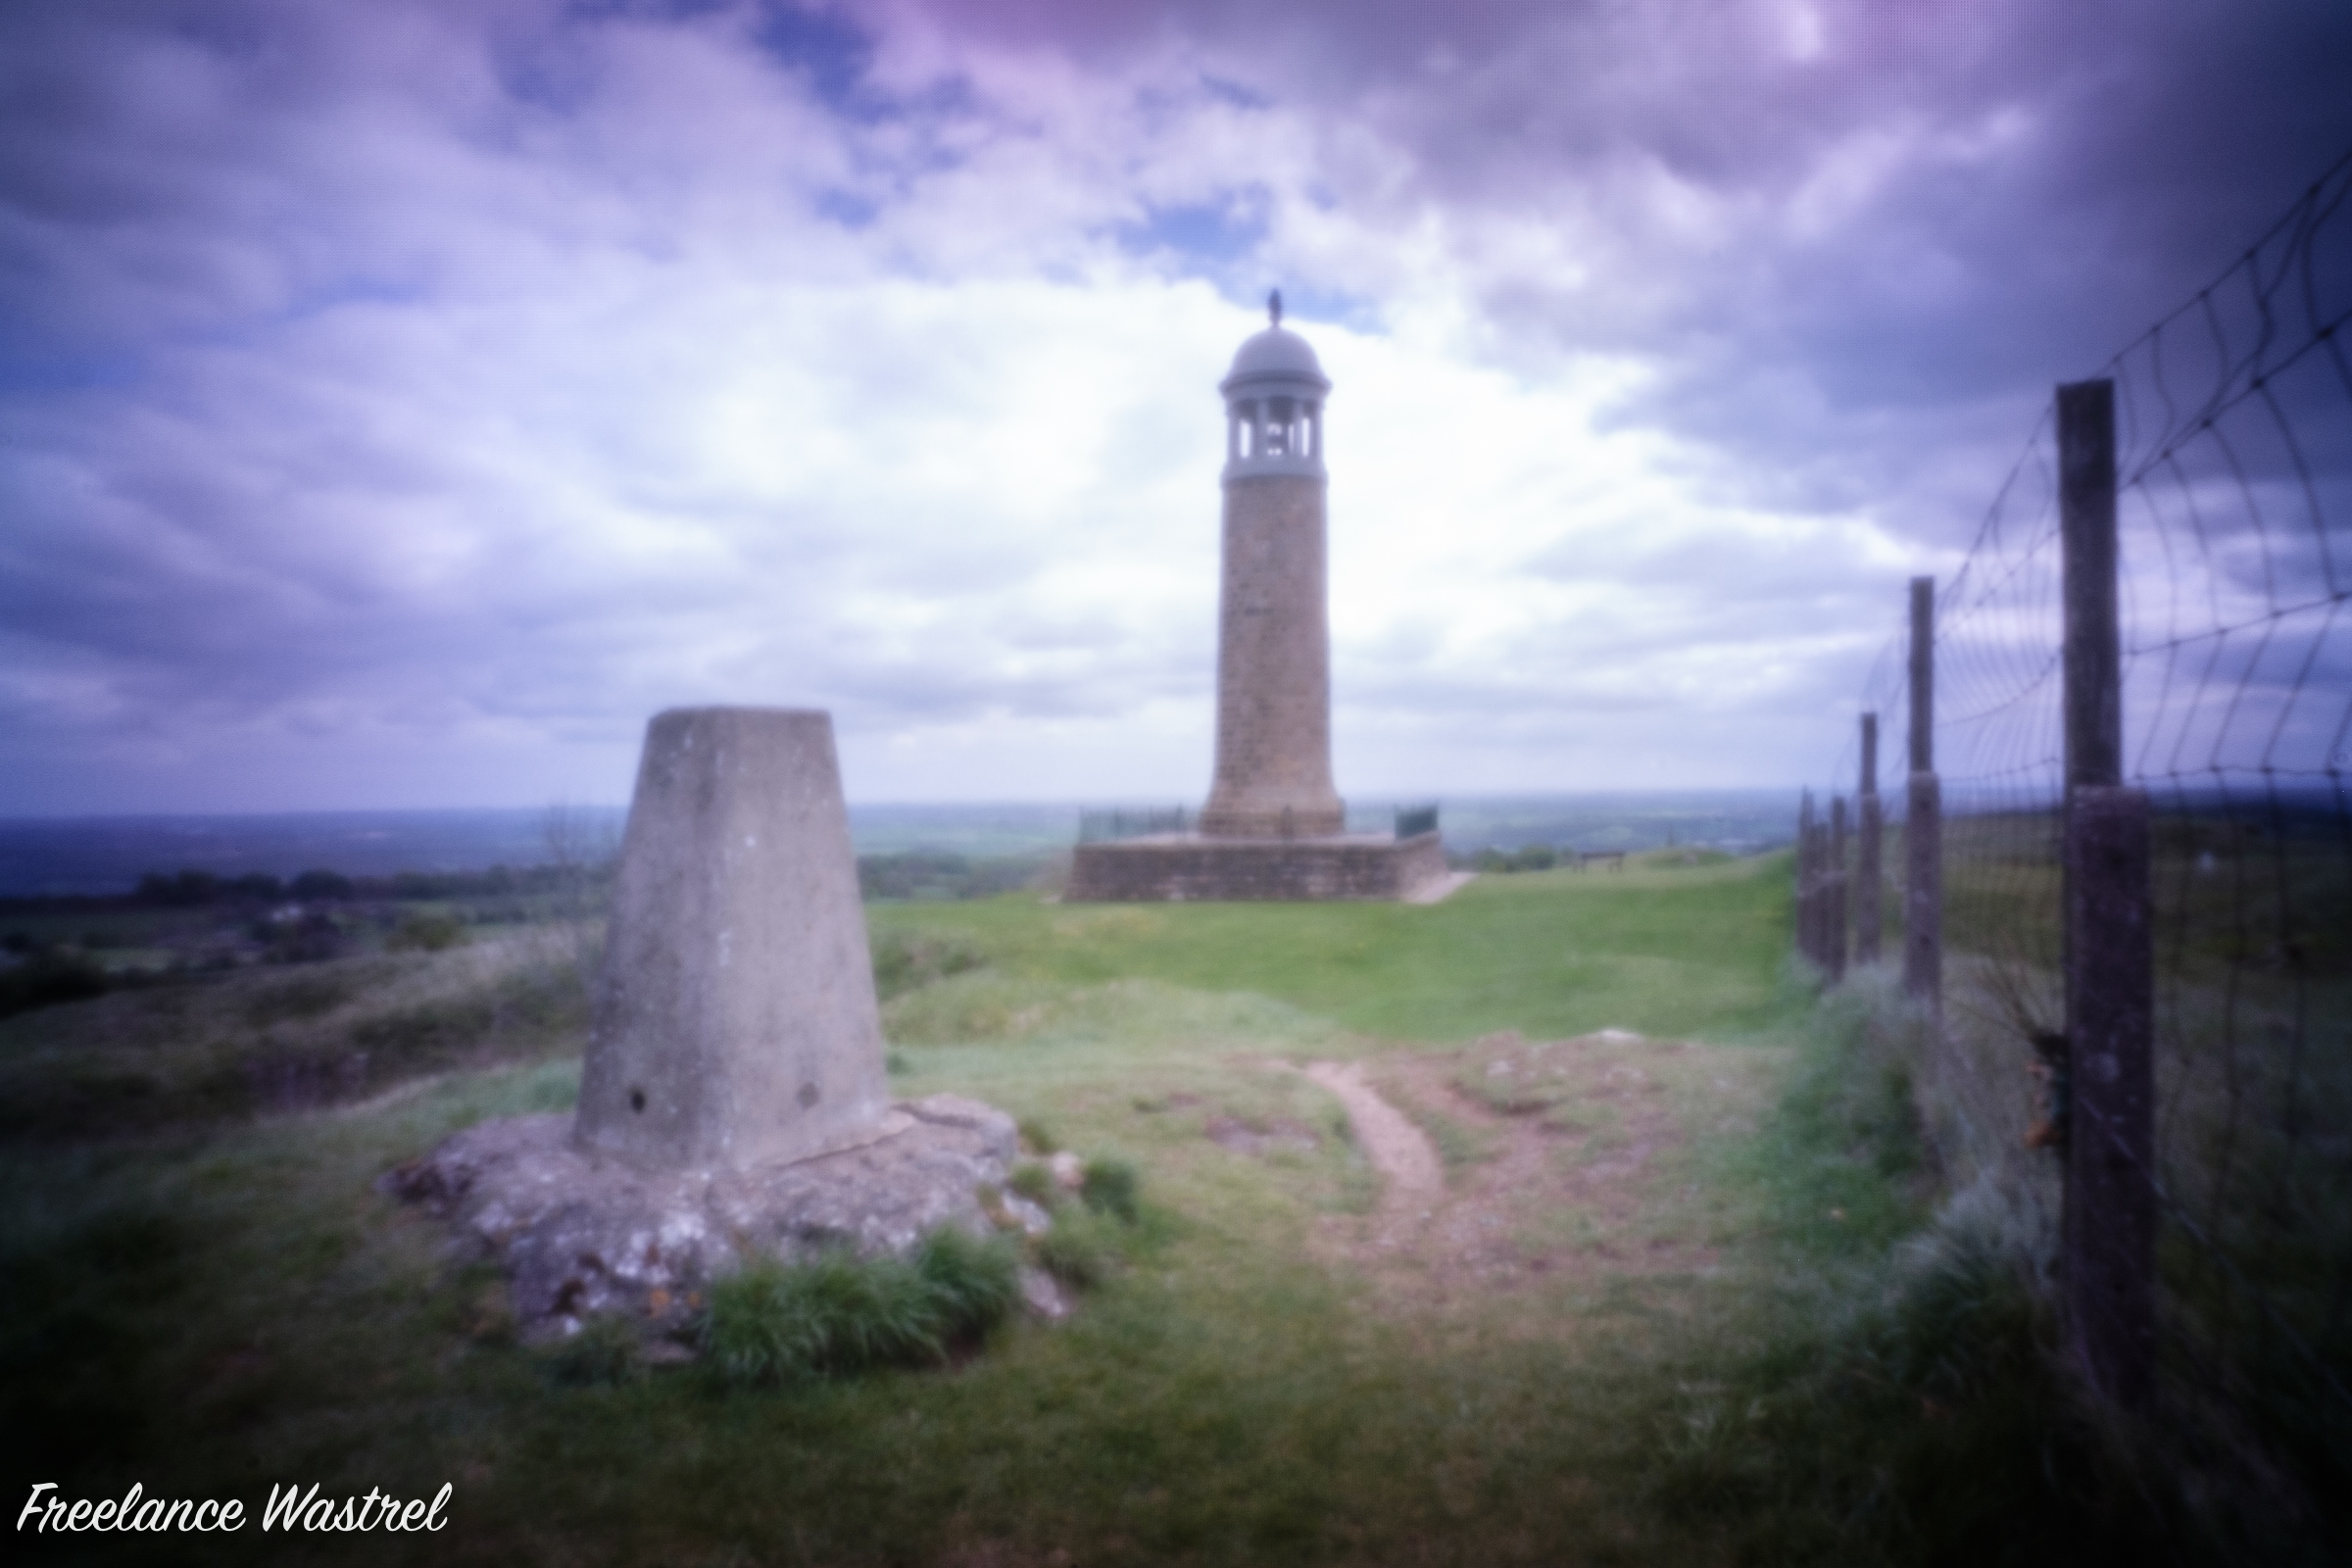 Crich Memorial Tower, April 2019